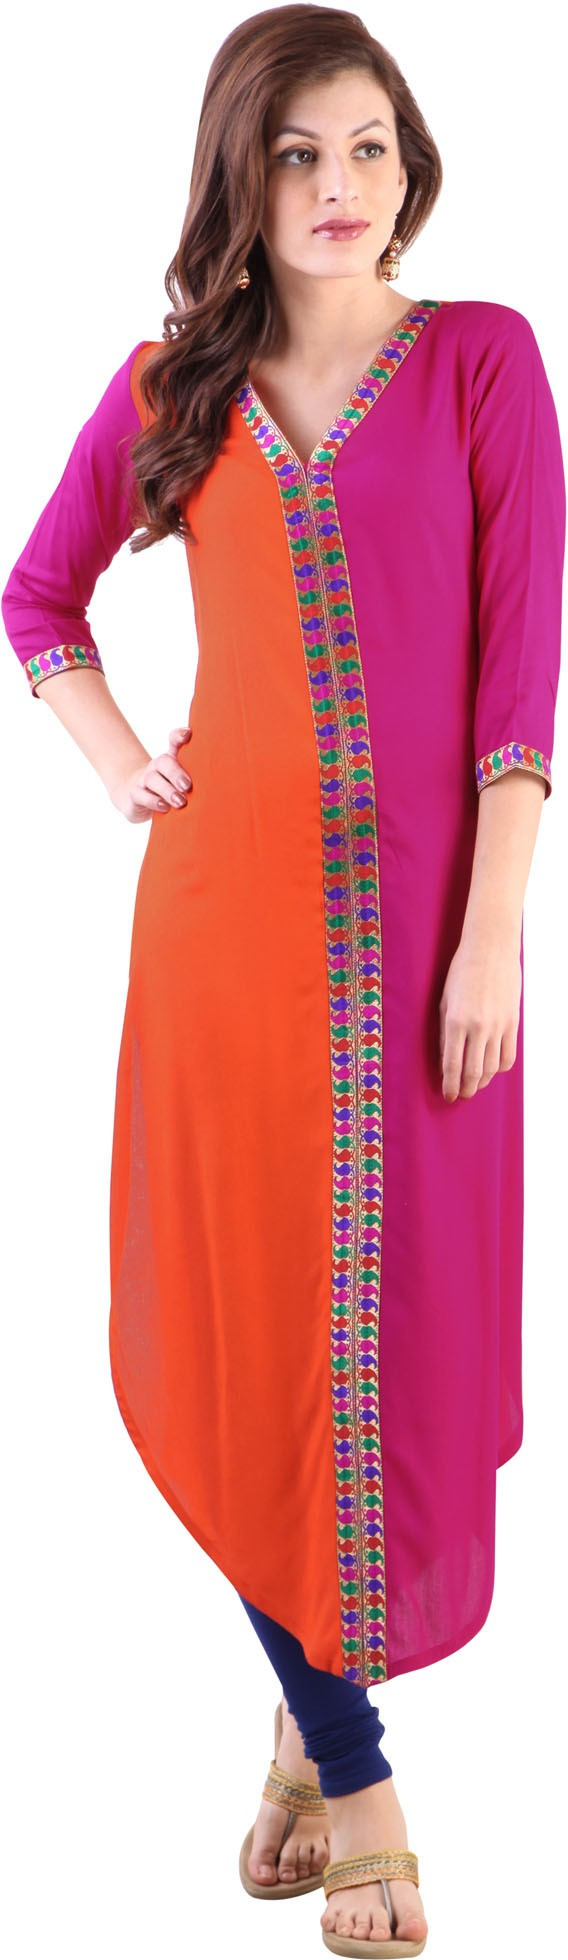 Libas Solid Womens A-line Kurta(Orange)